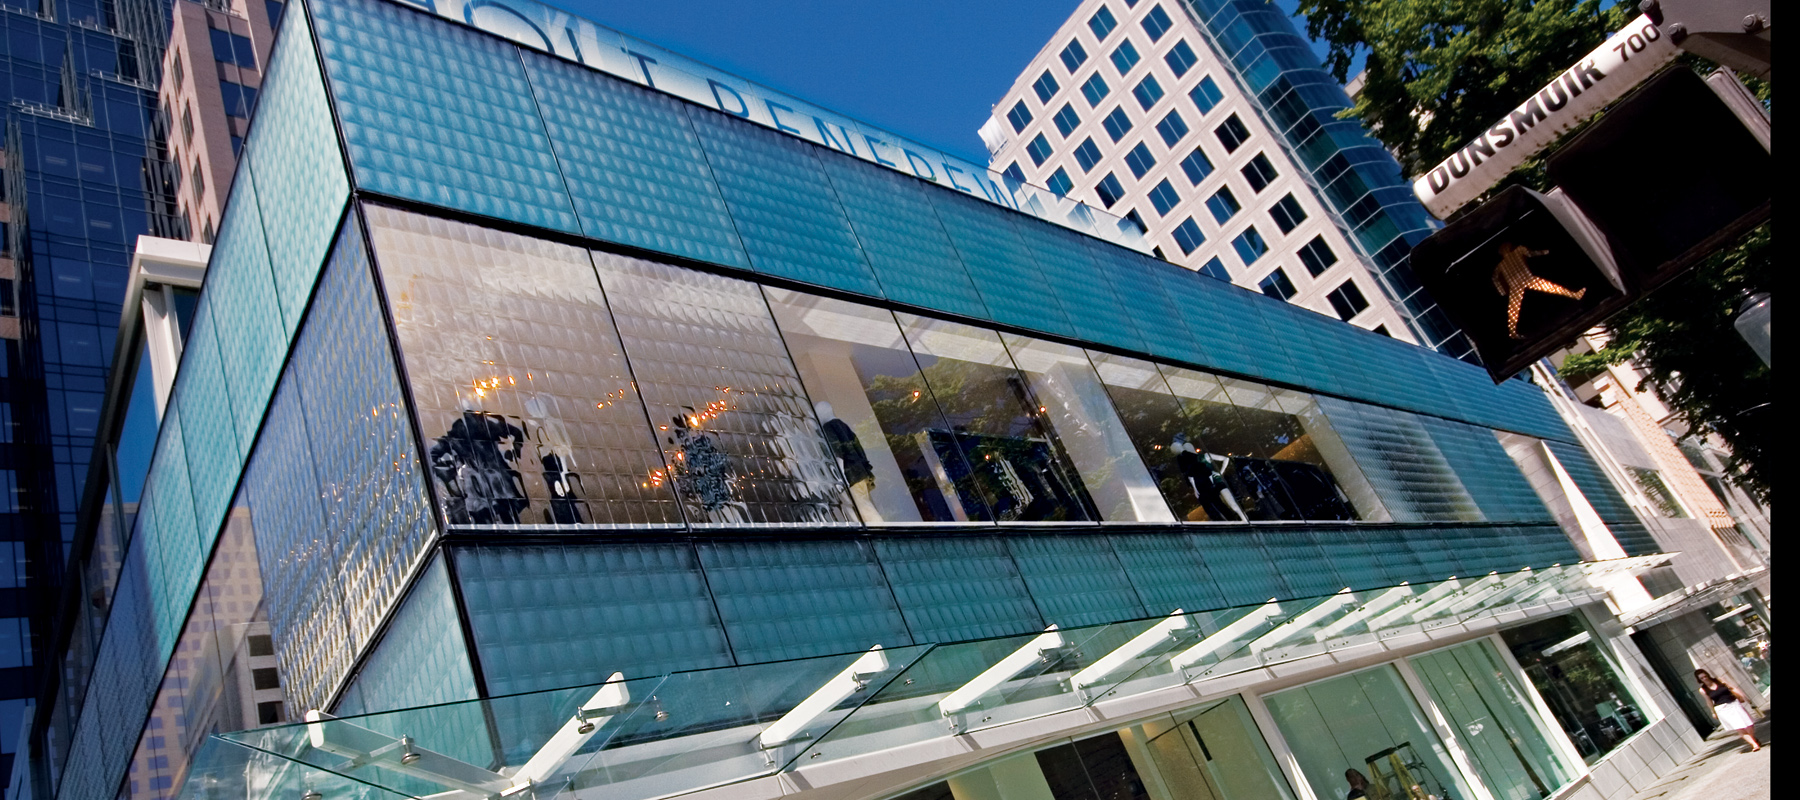 Los Angeles California Architectural Decorative Glass Building